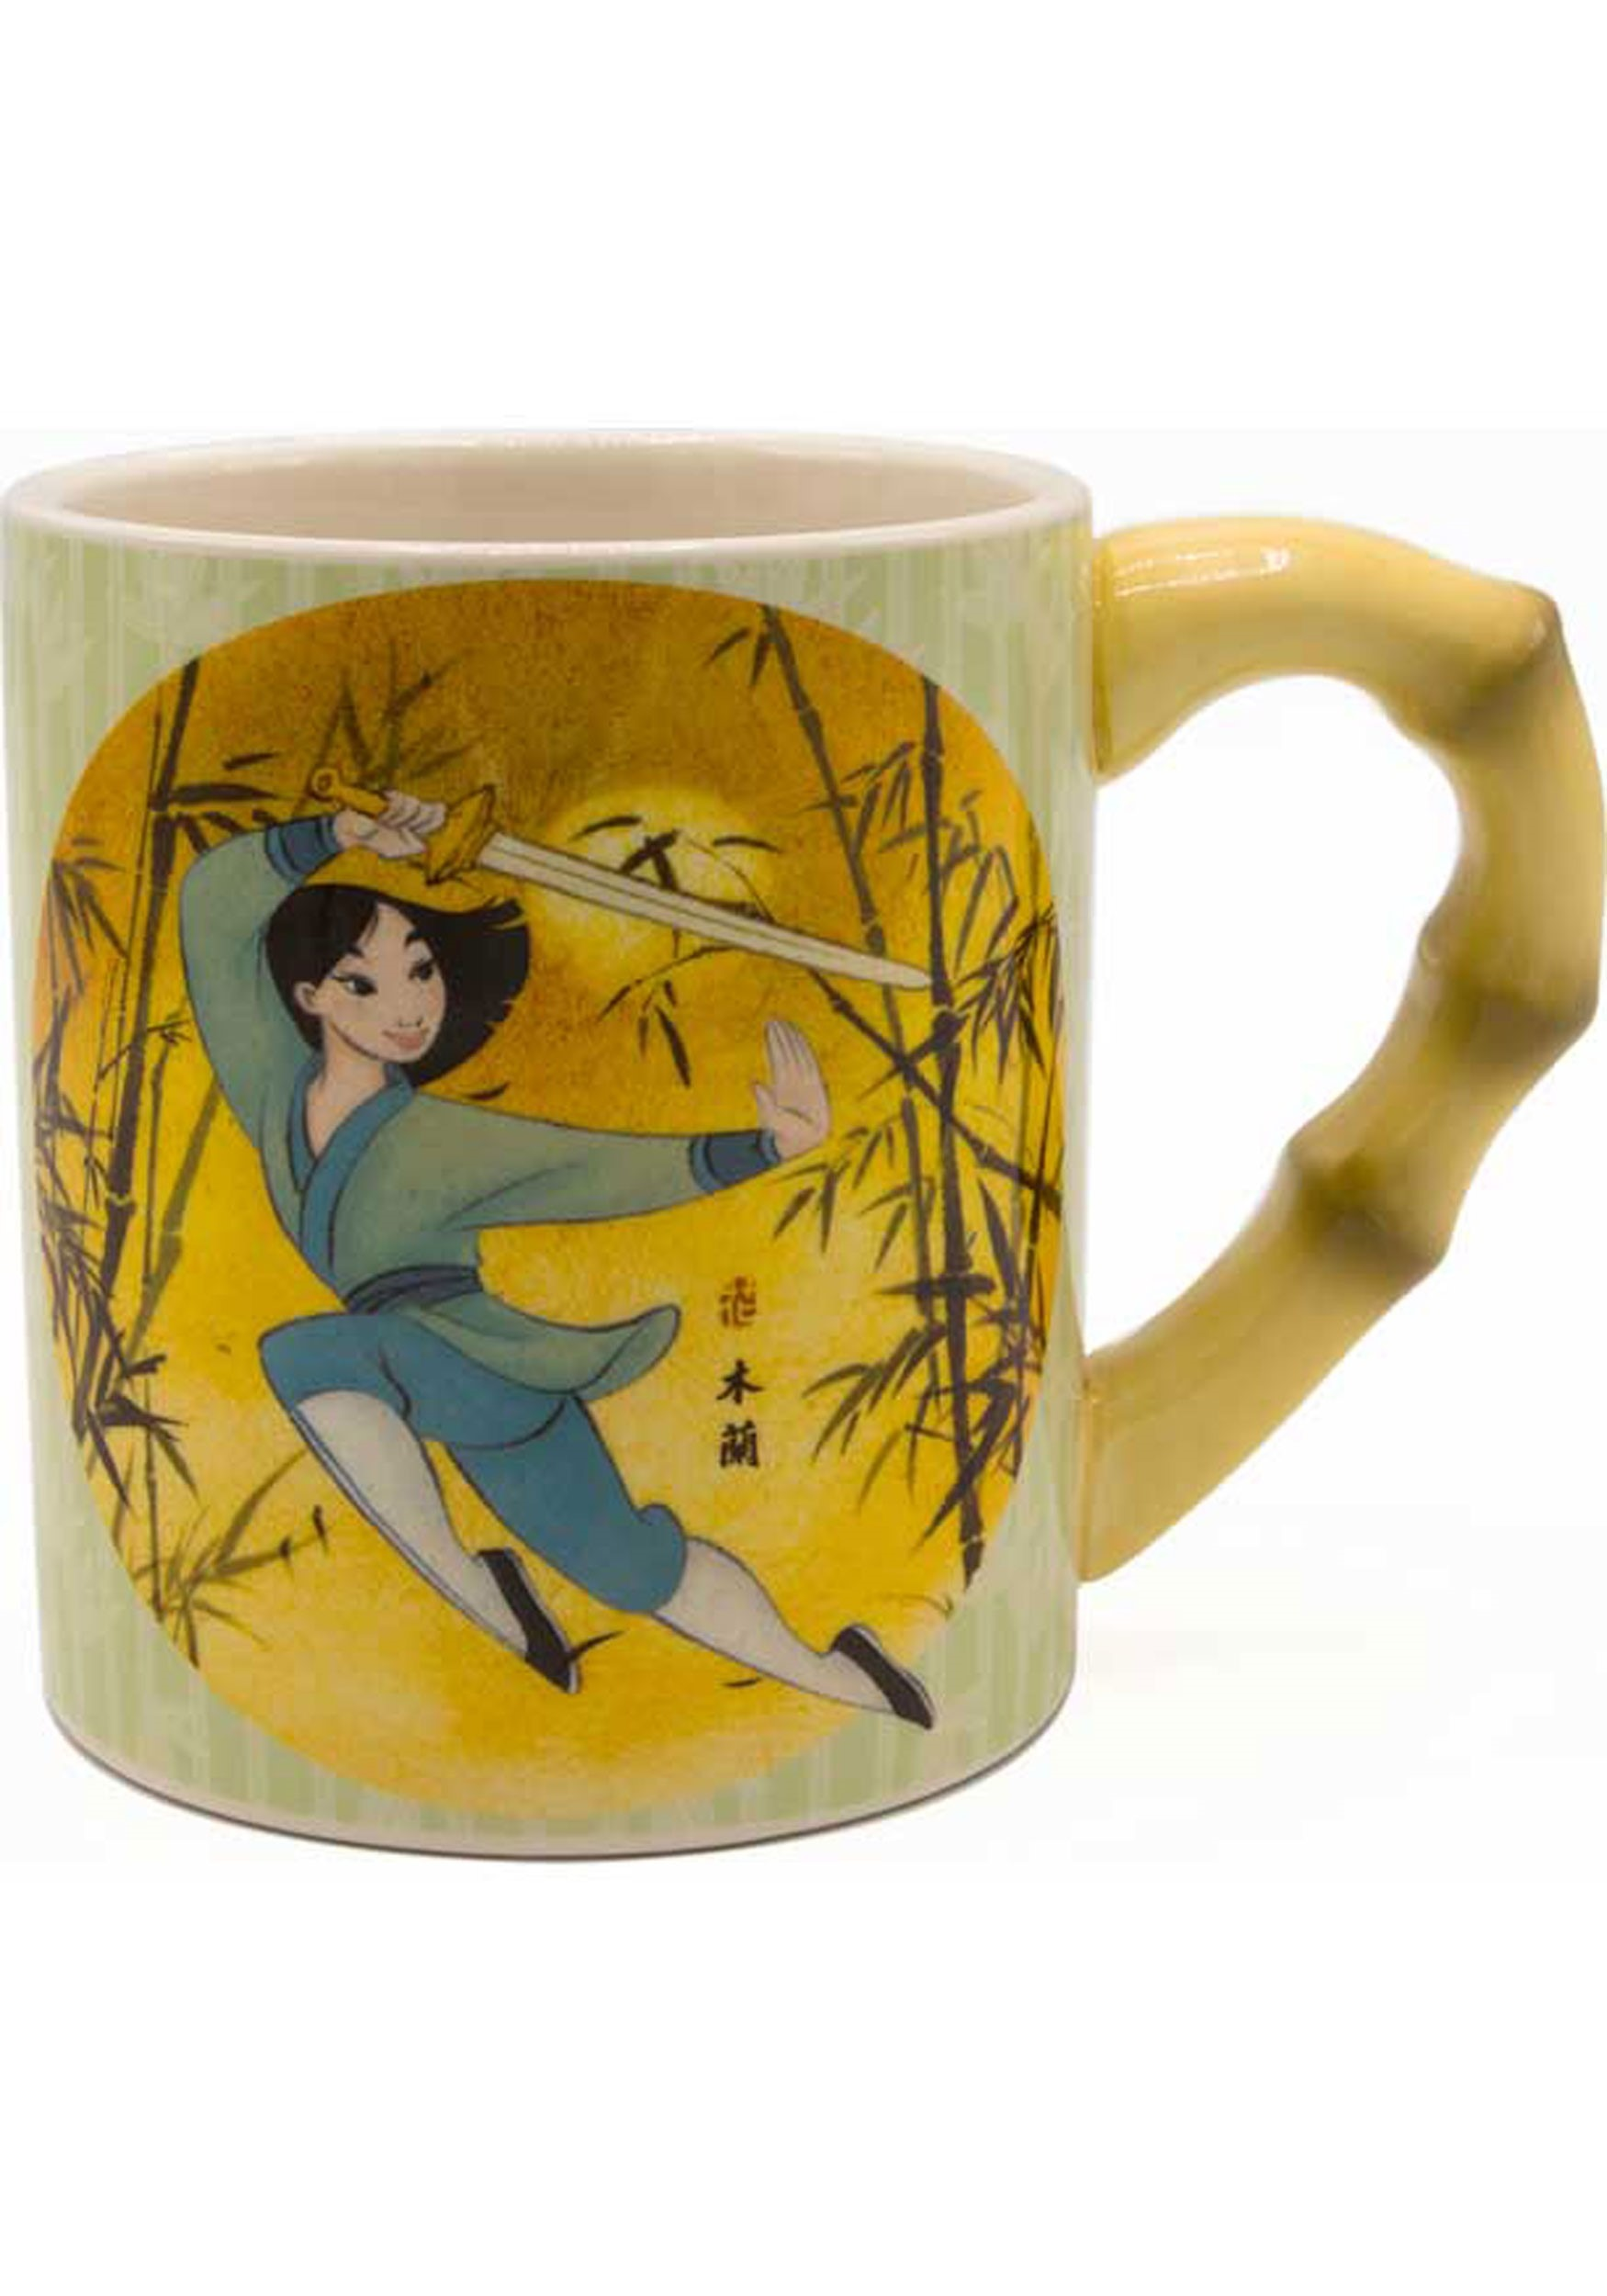 Disney Mulan 20oz Ceramic Mug w/ Sculpted Bamboo Handle